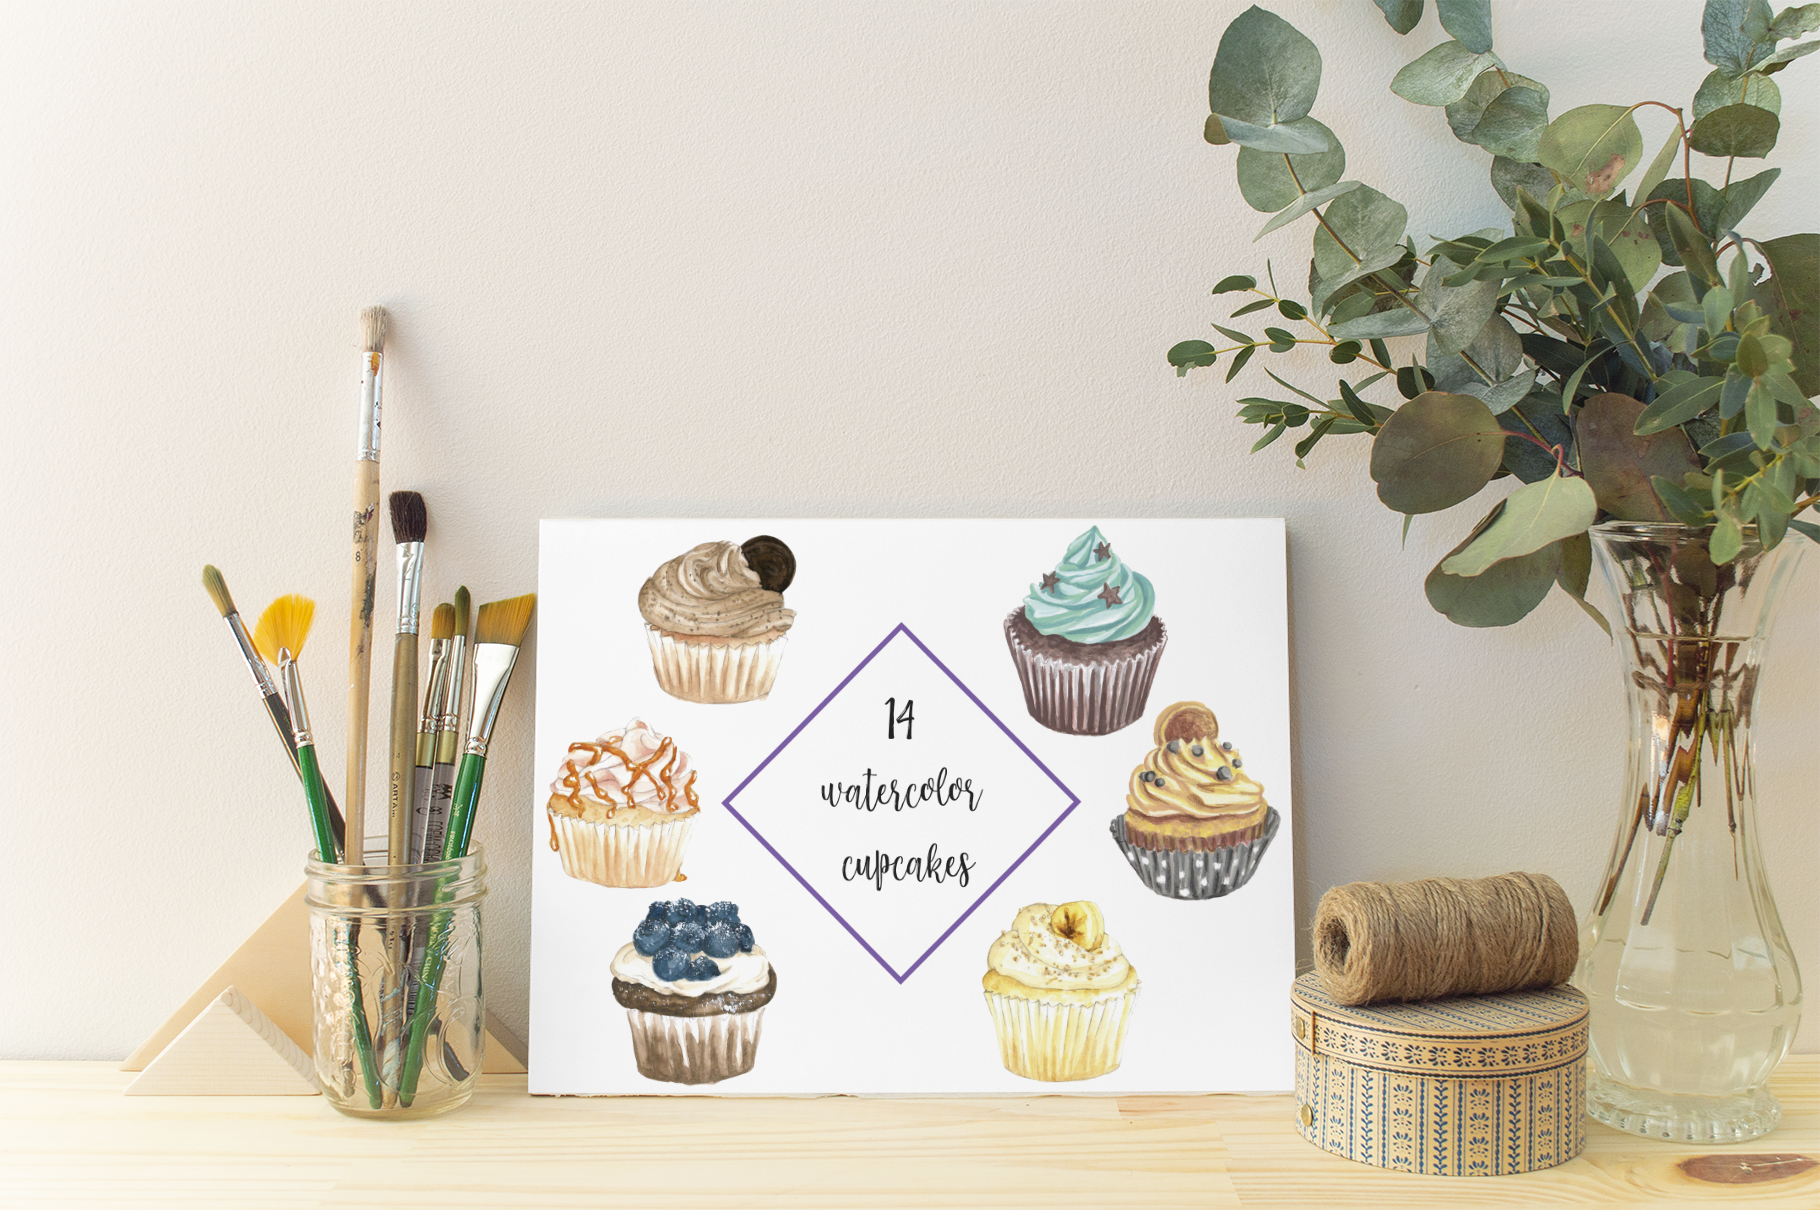 Watercolor cupcakes clip art. Muffins clipart sweet